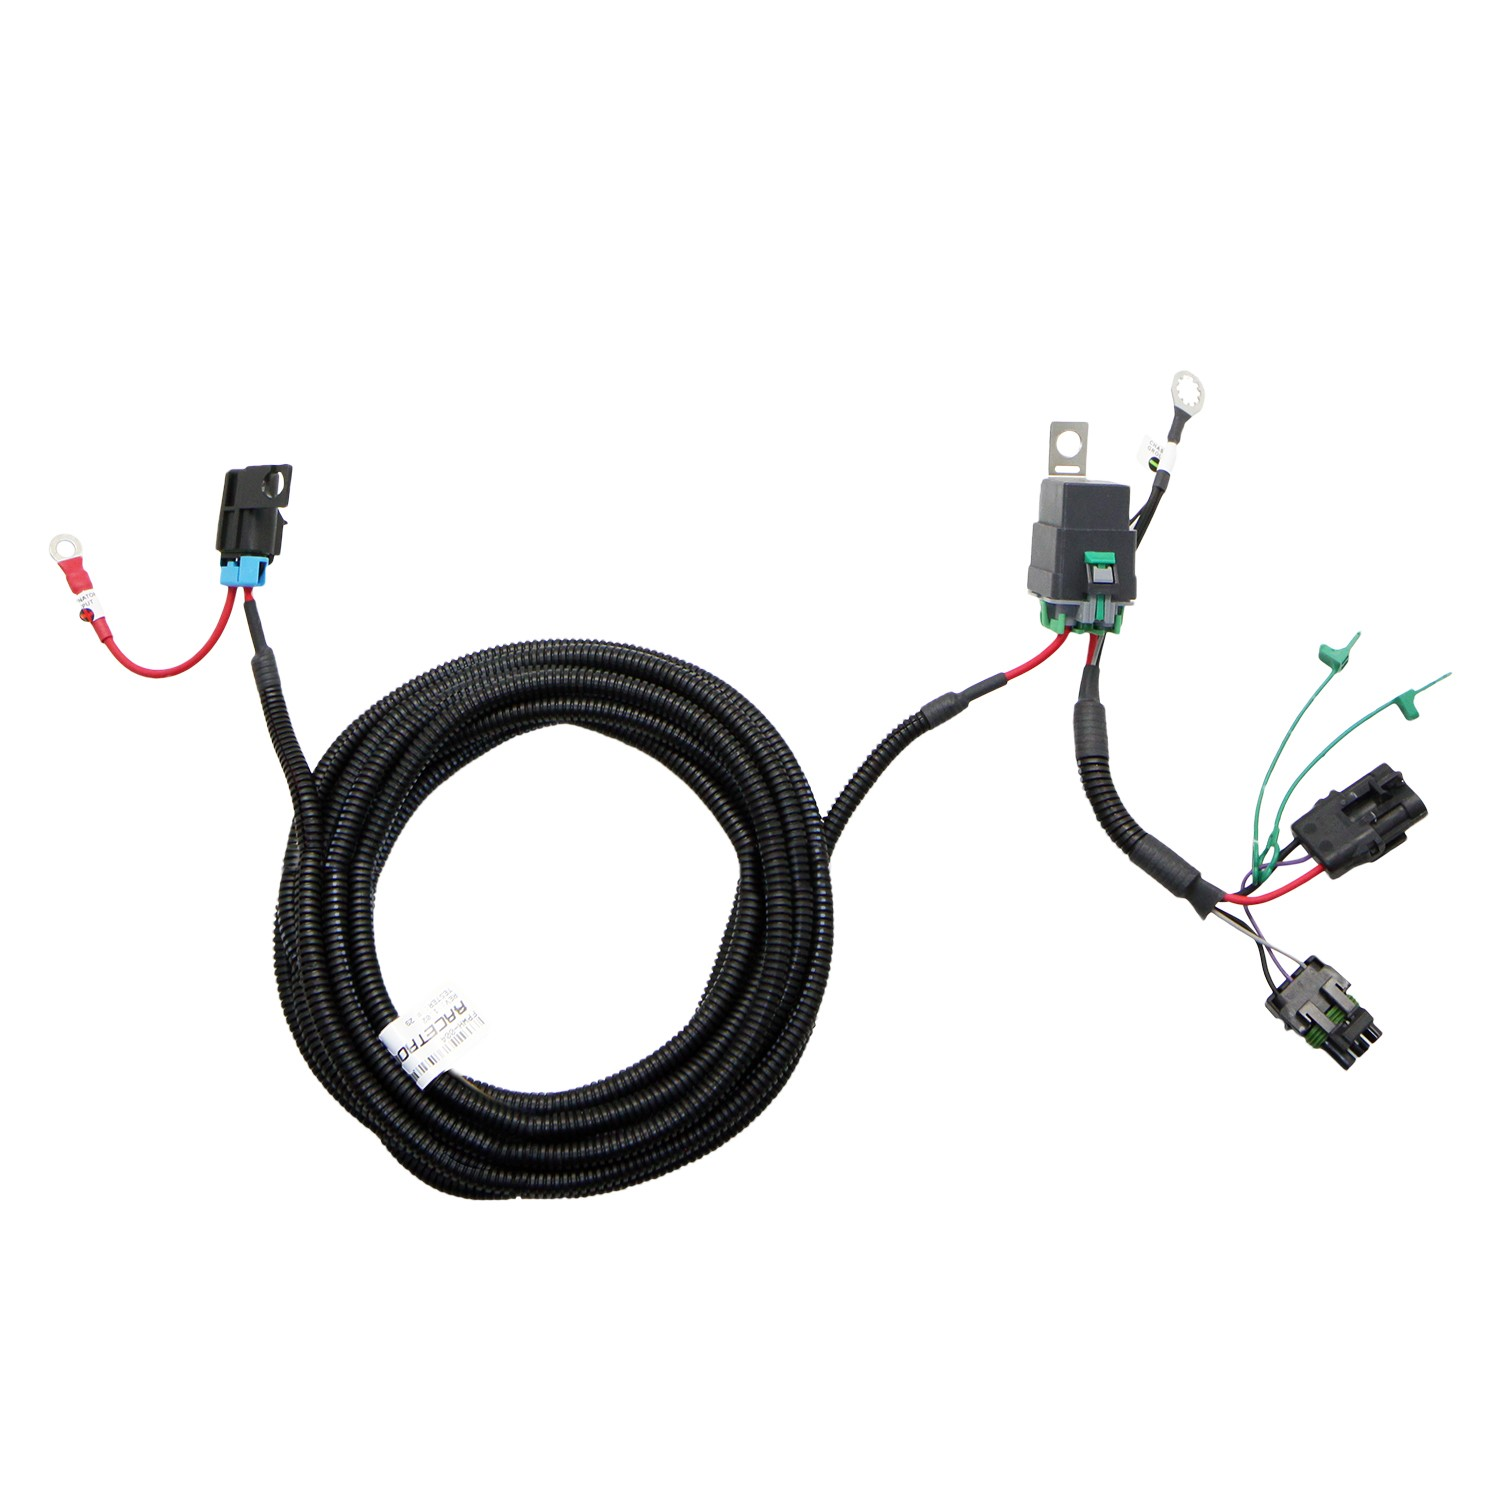 blt1 fuel pump wiring harness  fpwh